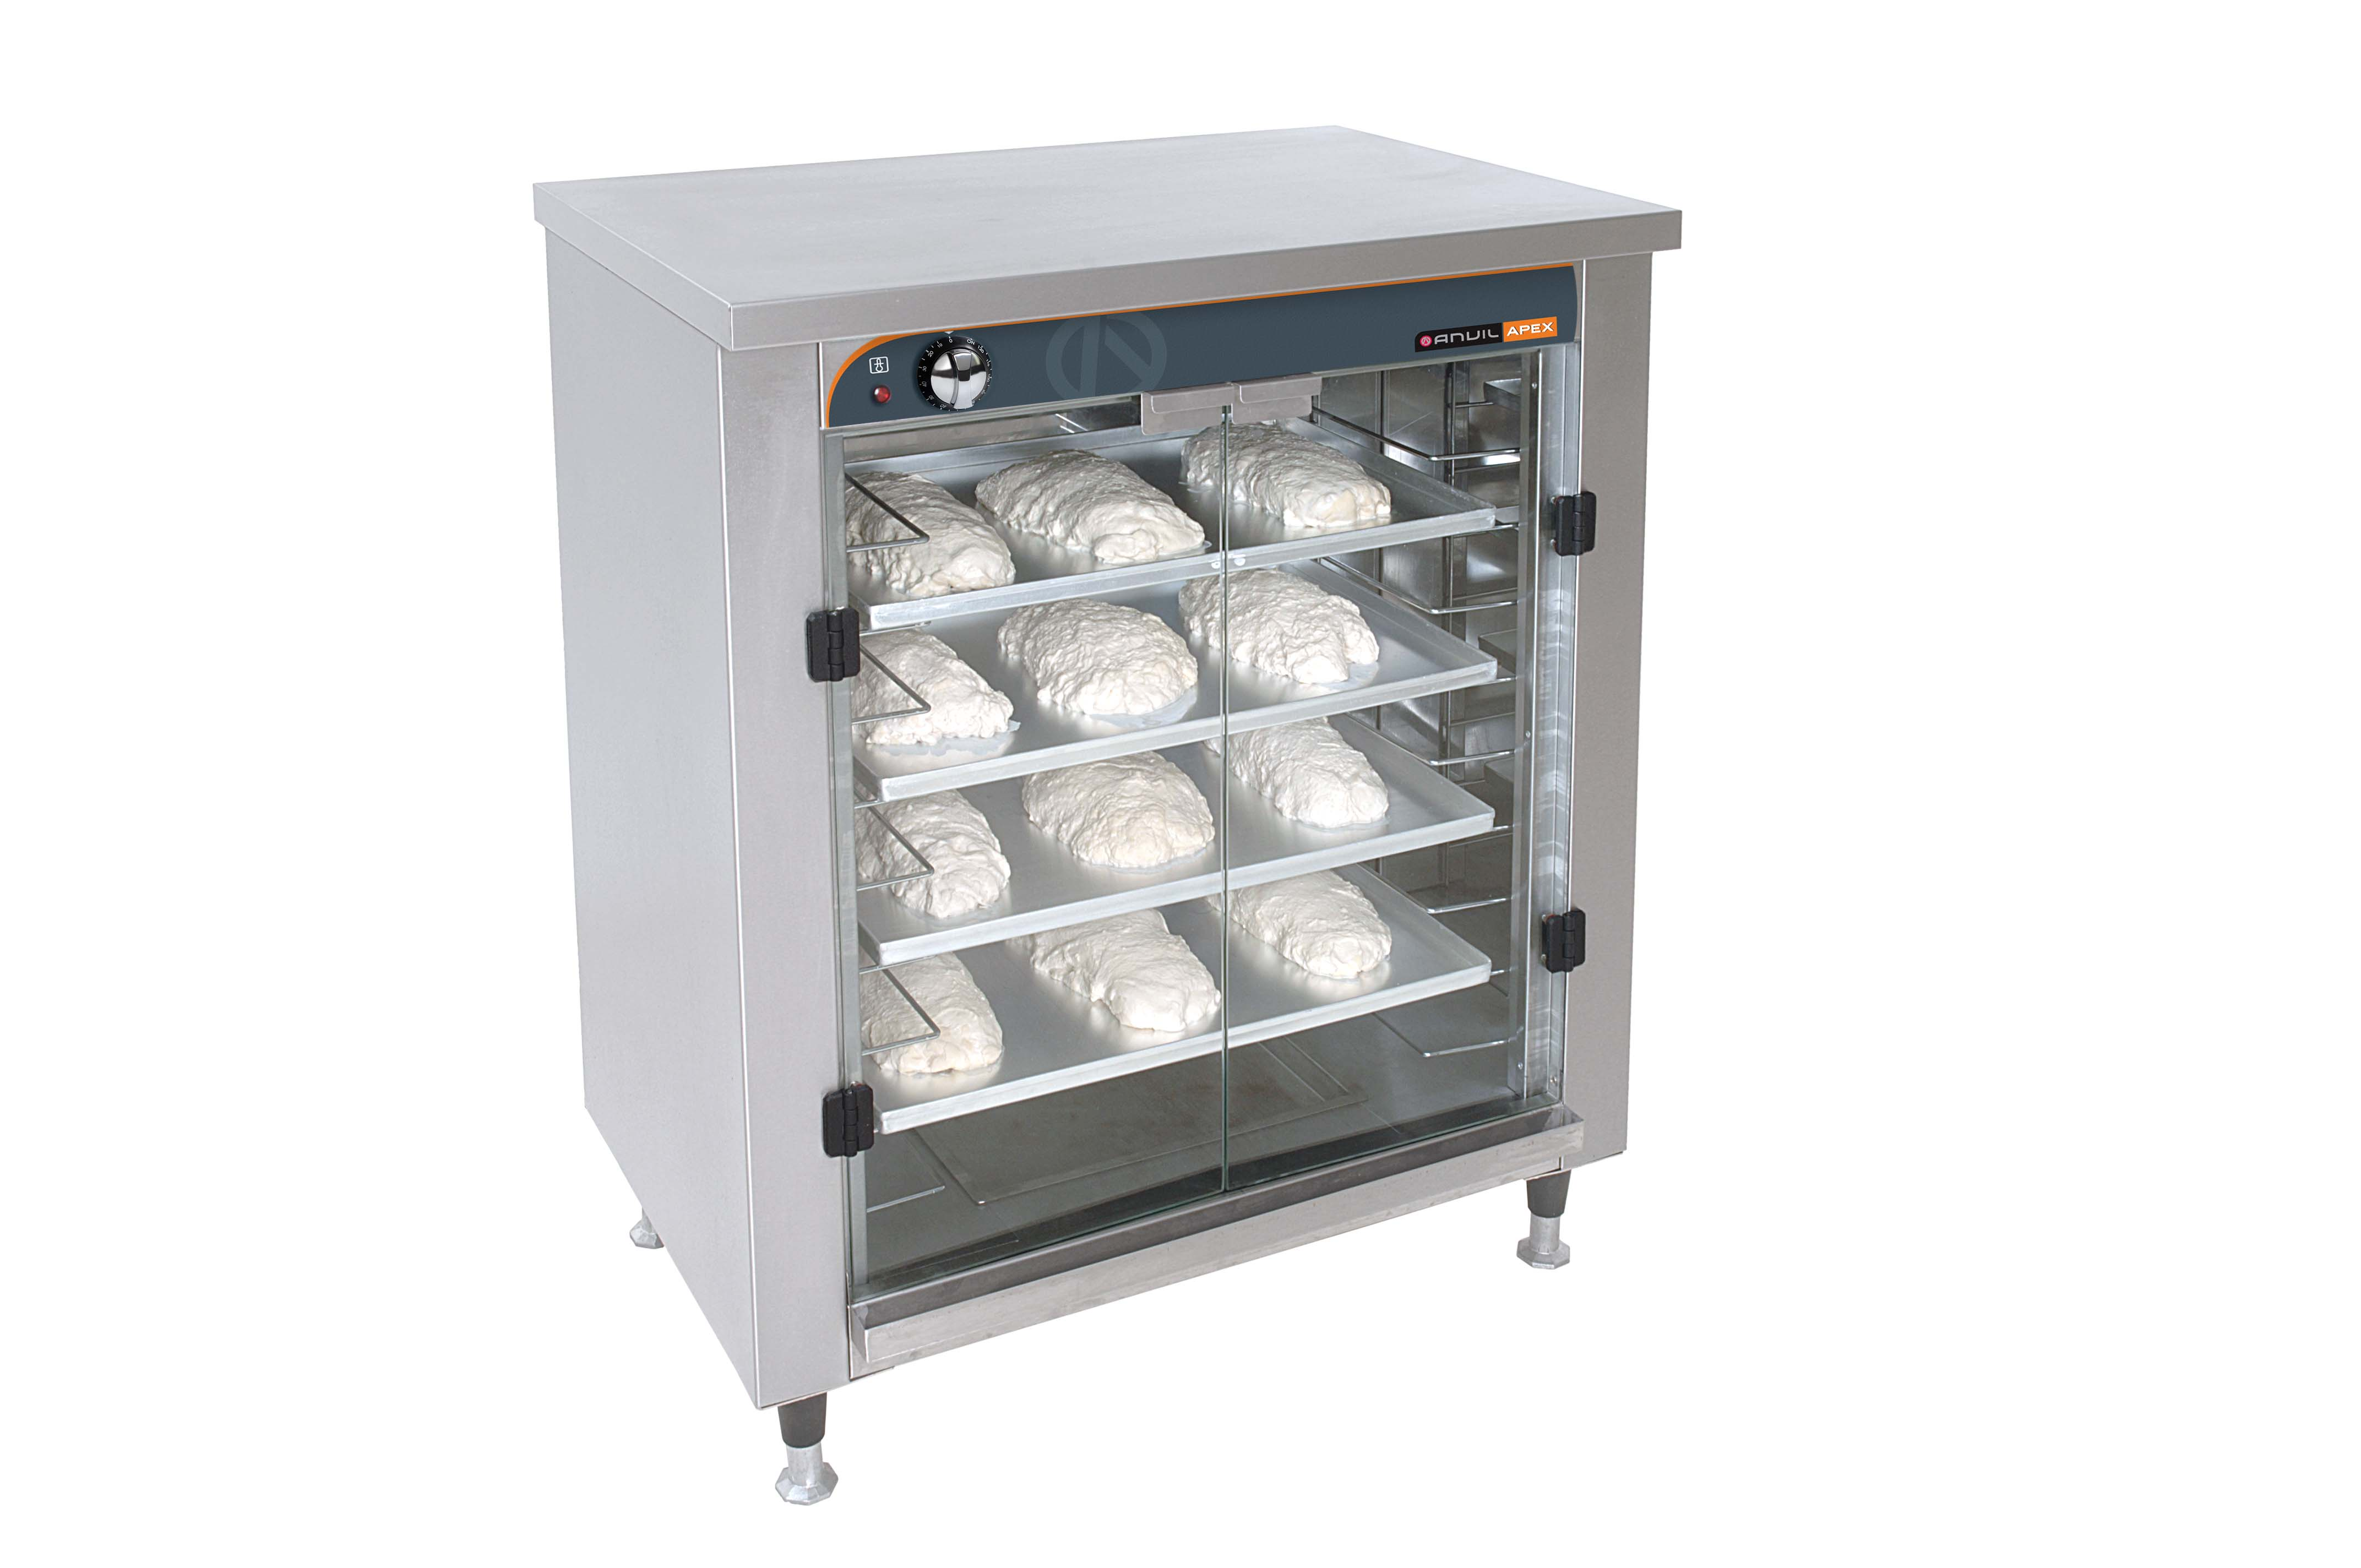 poa0001--prover-oven-anvil-trays-not-included